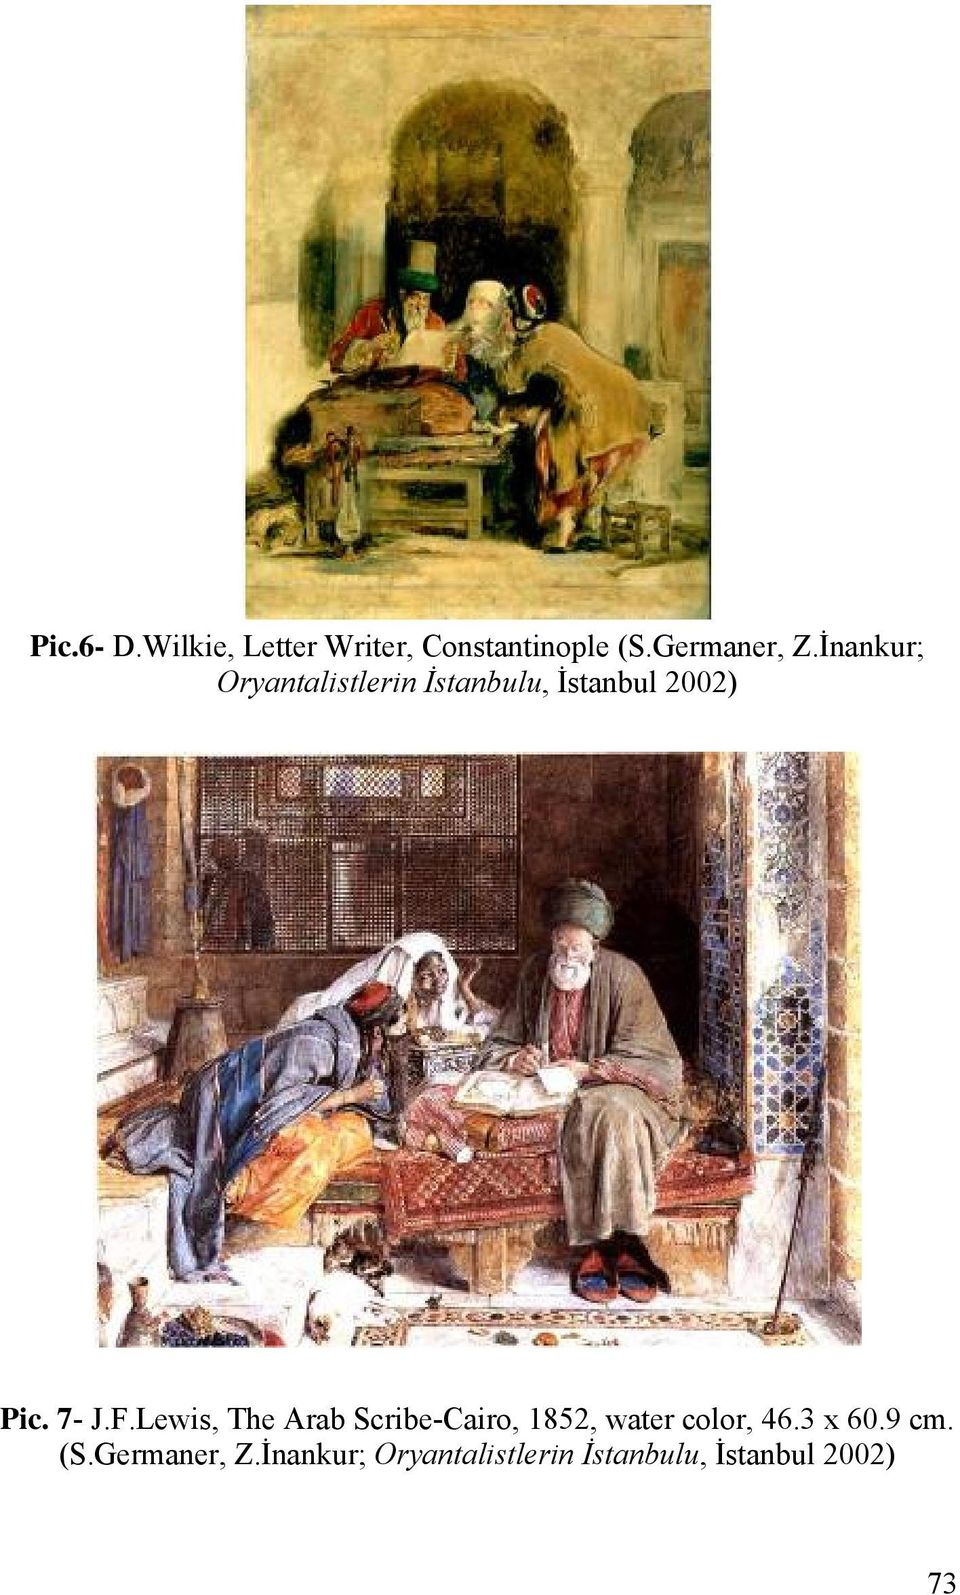 Lewis, The Arab Scribe-Cairo, 1852, water color, 46.3 x 60.9 cm.